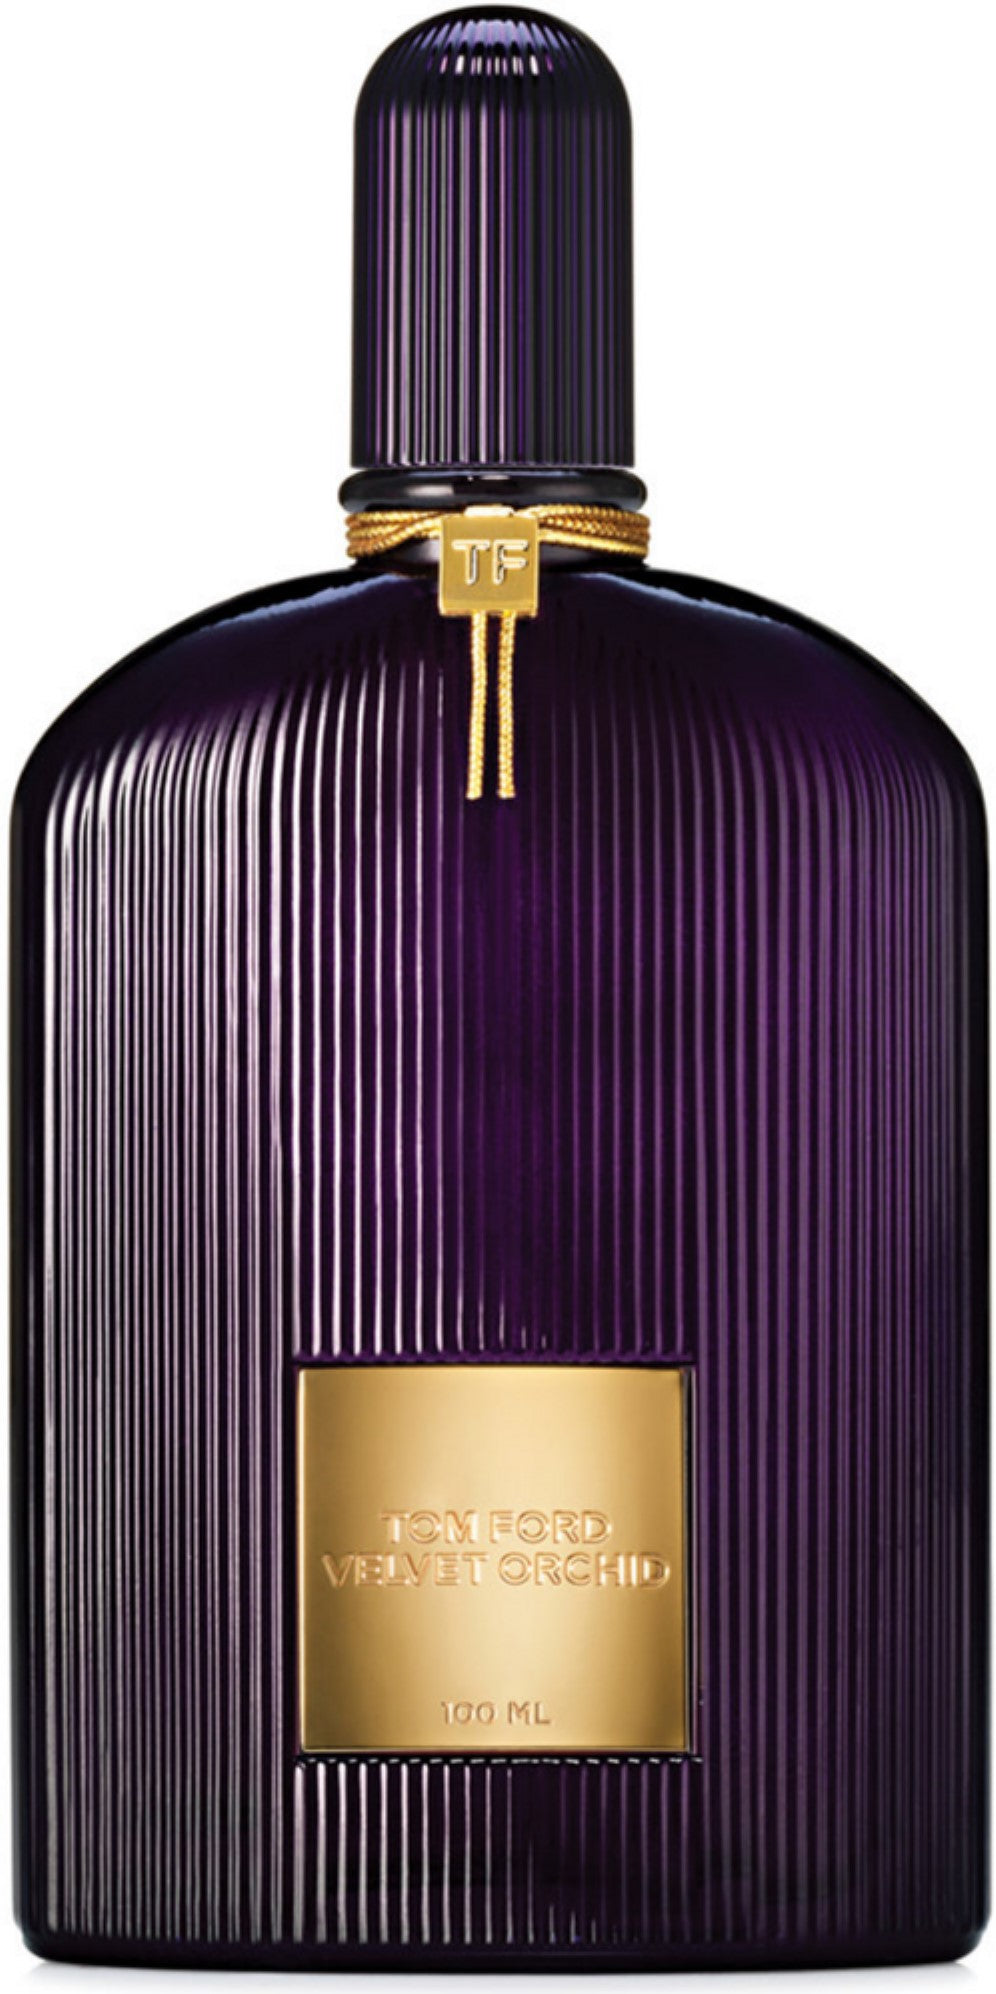 Tom Ford Velvet Orchid Eau de Parfum for Women 3.4 oz